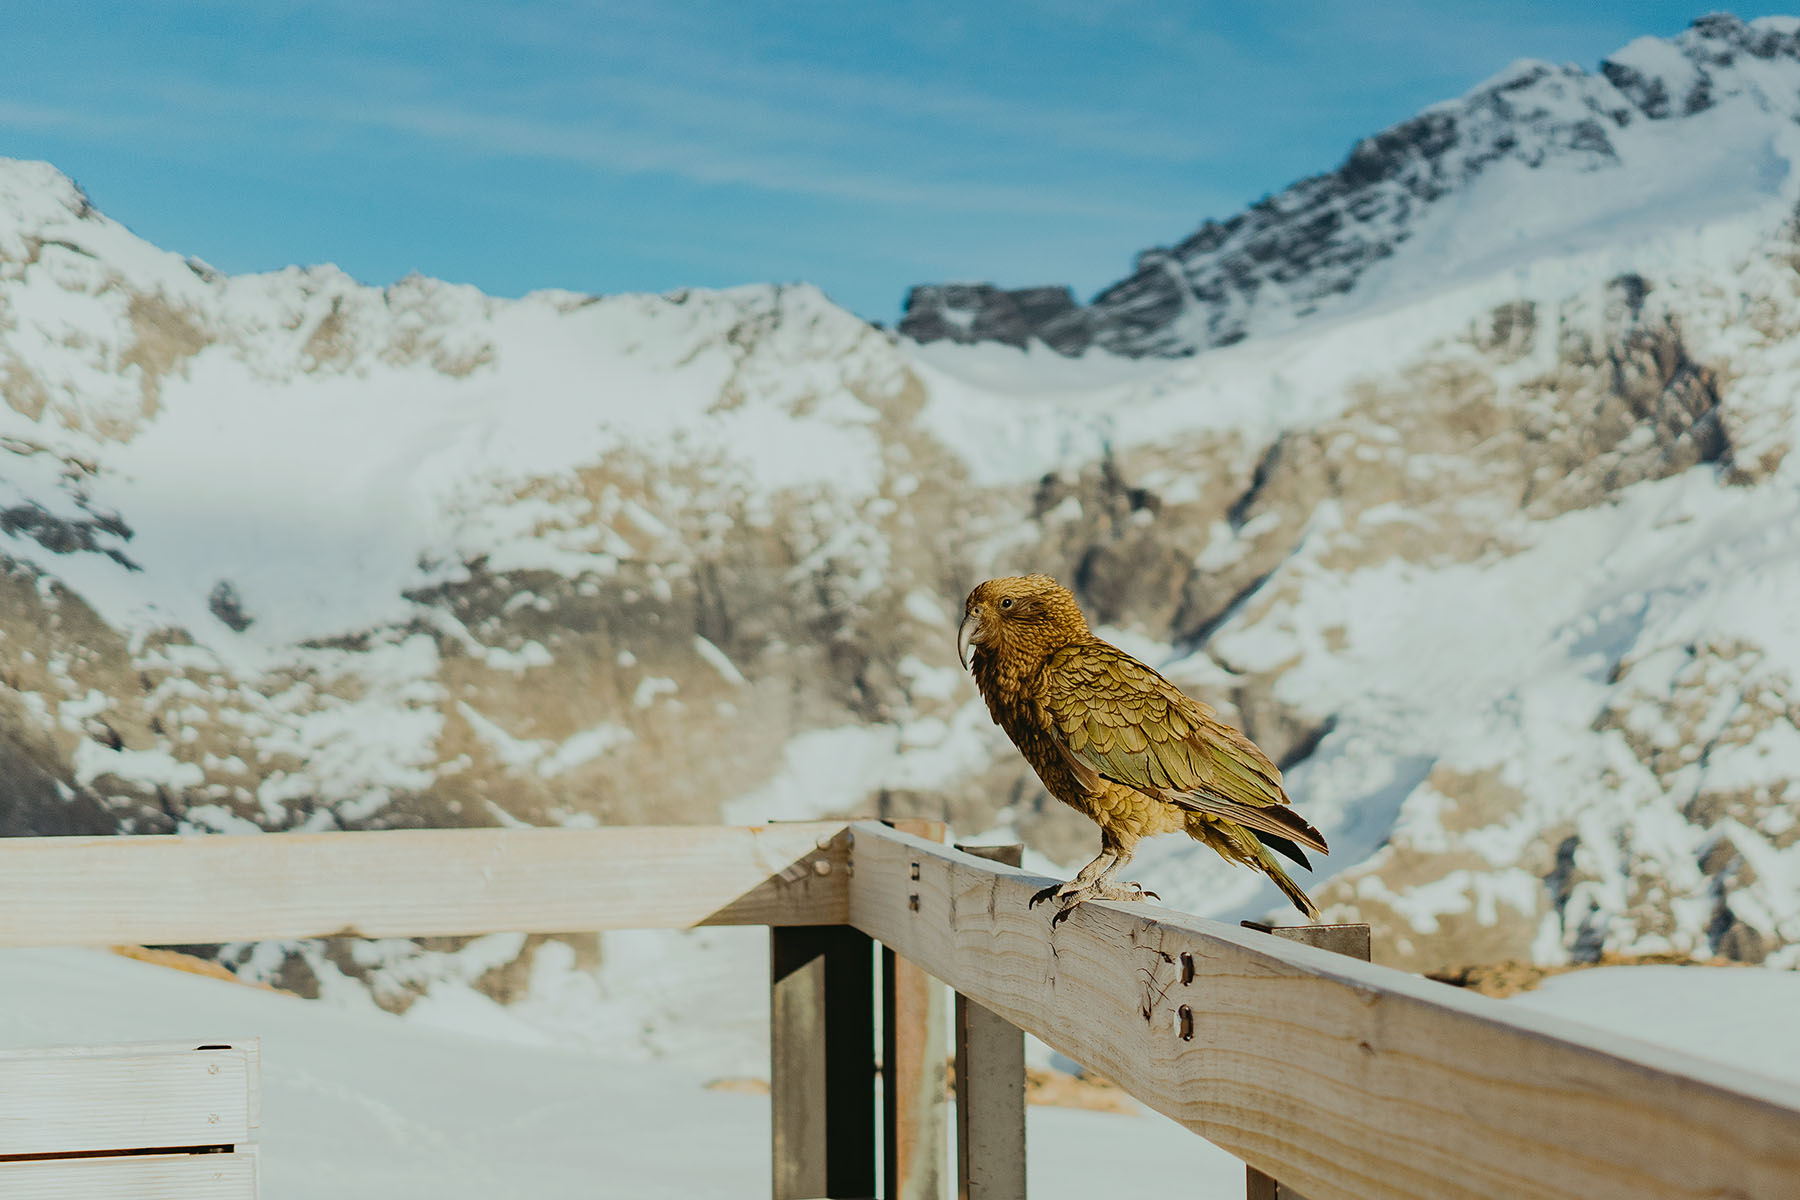 ragnhild Utne Aoraki/mount cook national park new zealand mueller hut kea bird